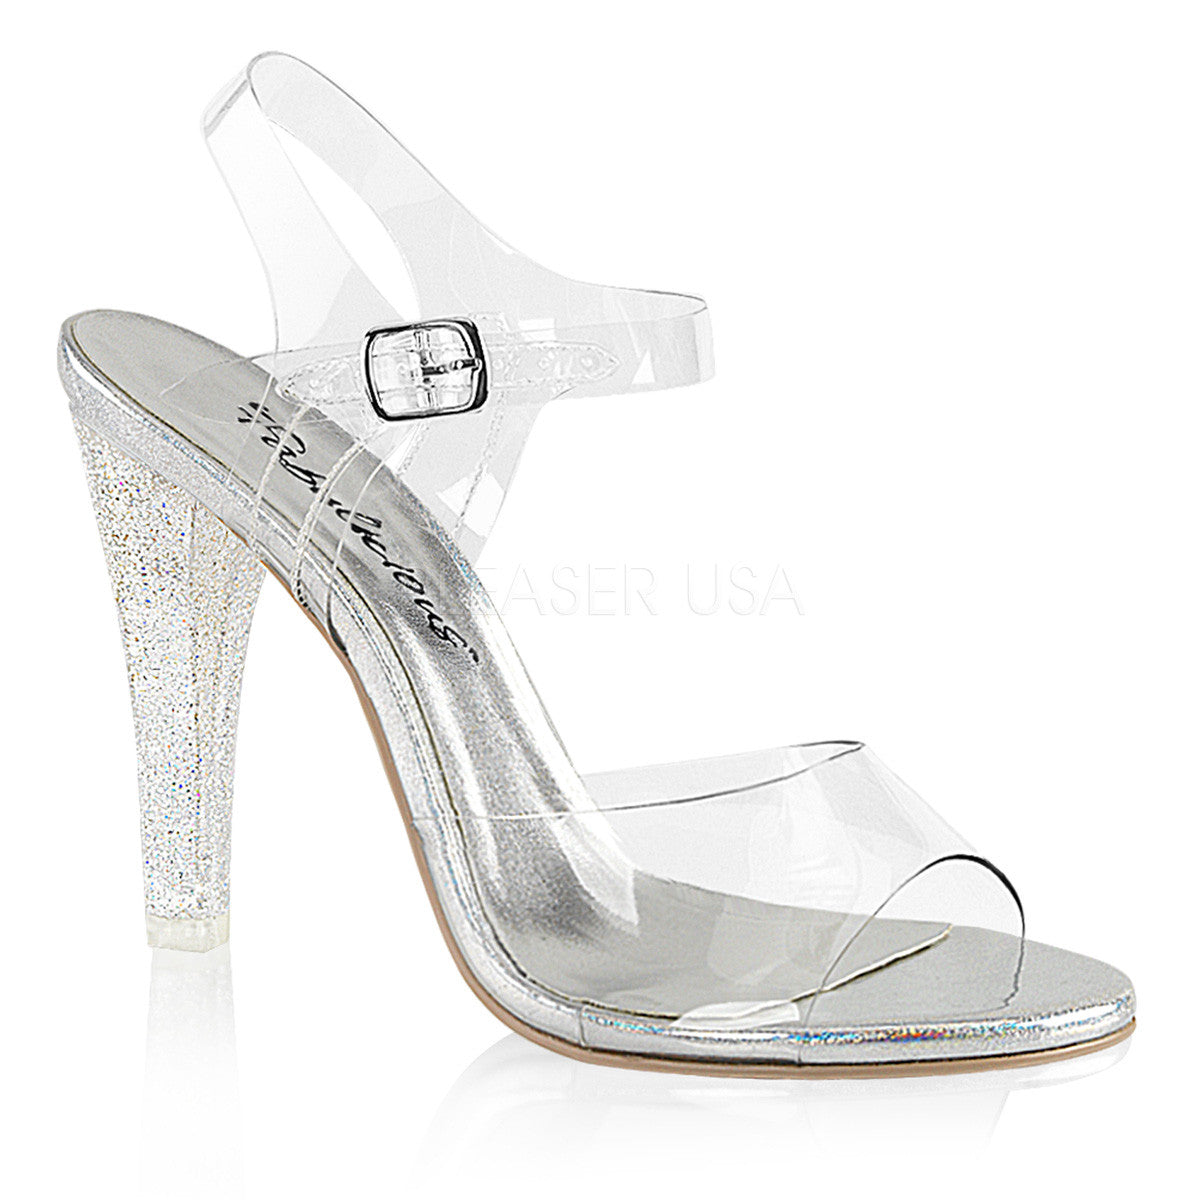 Fabulicious CLEARLY-408MG Clear Ankle Strap Sandals With Glitter Bottom - Shoecup.com - 1